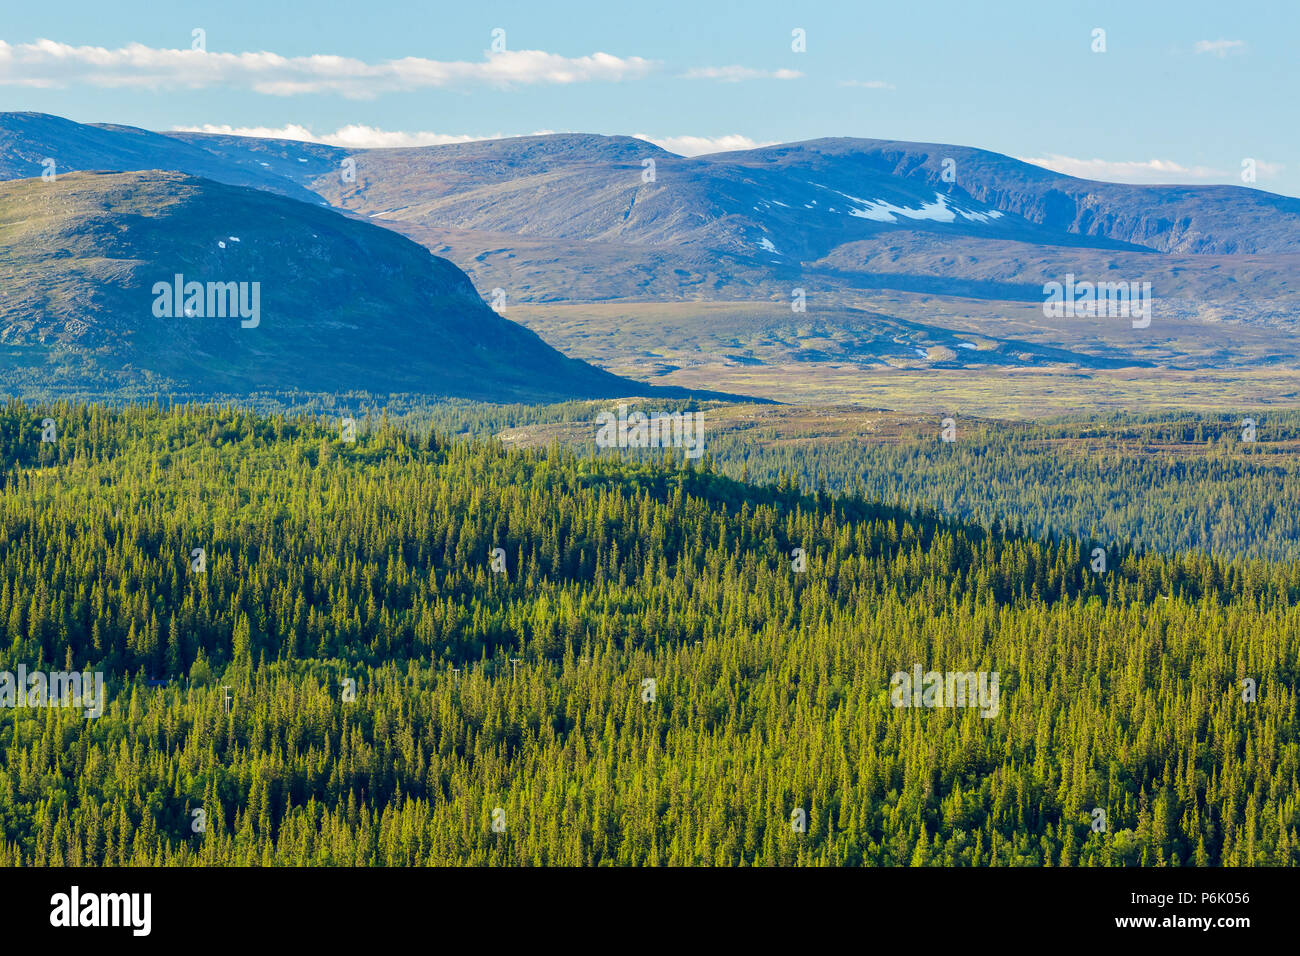 Woodland landscape view with mountains in the north - Stock Image